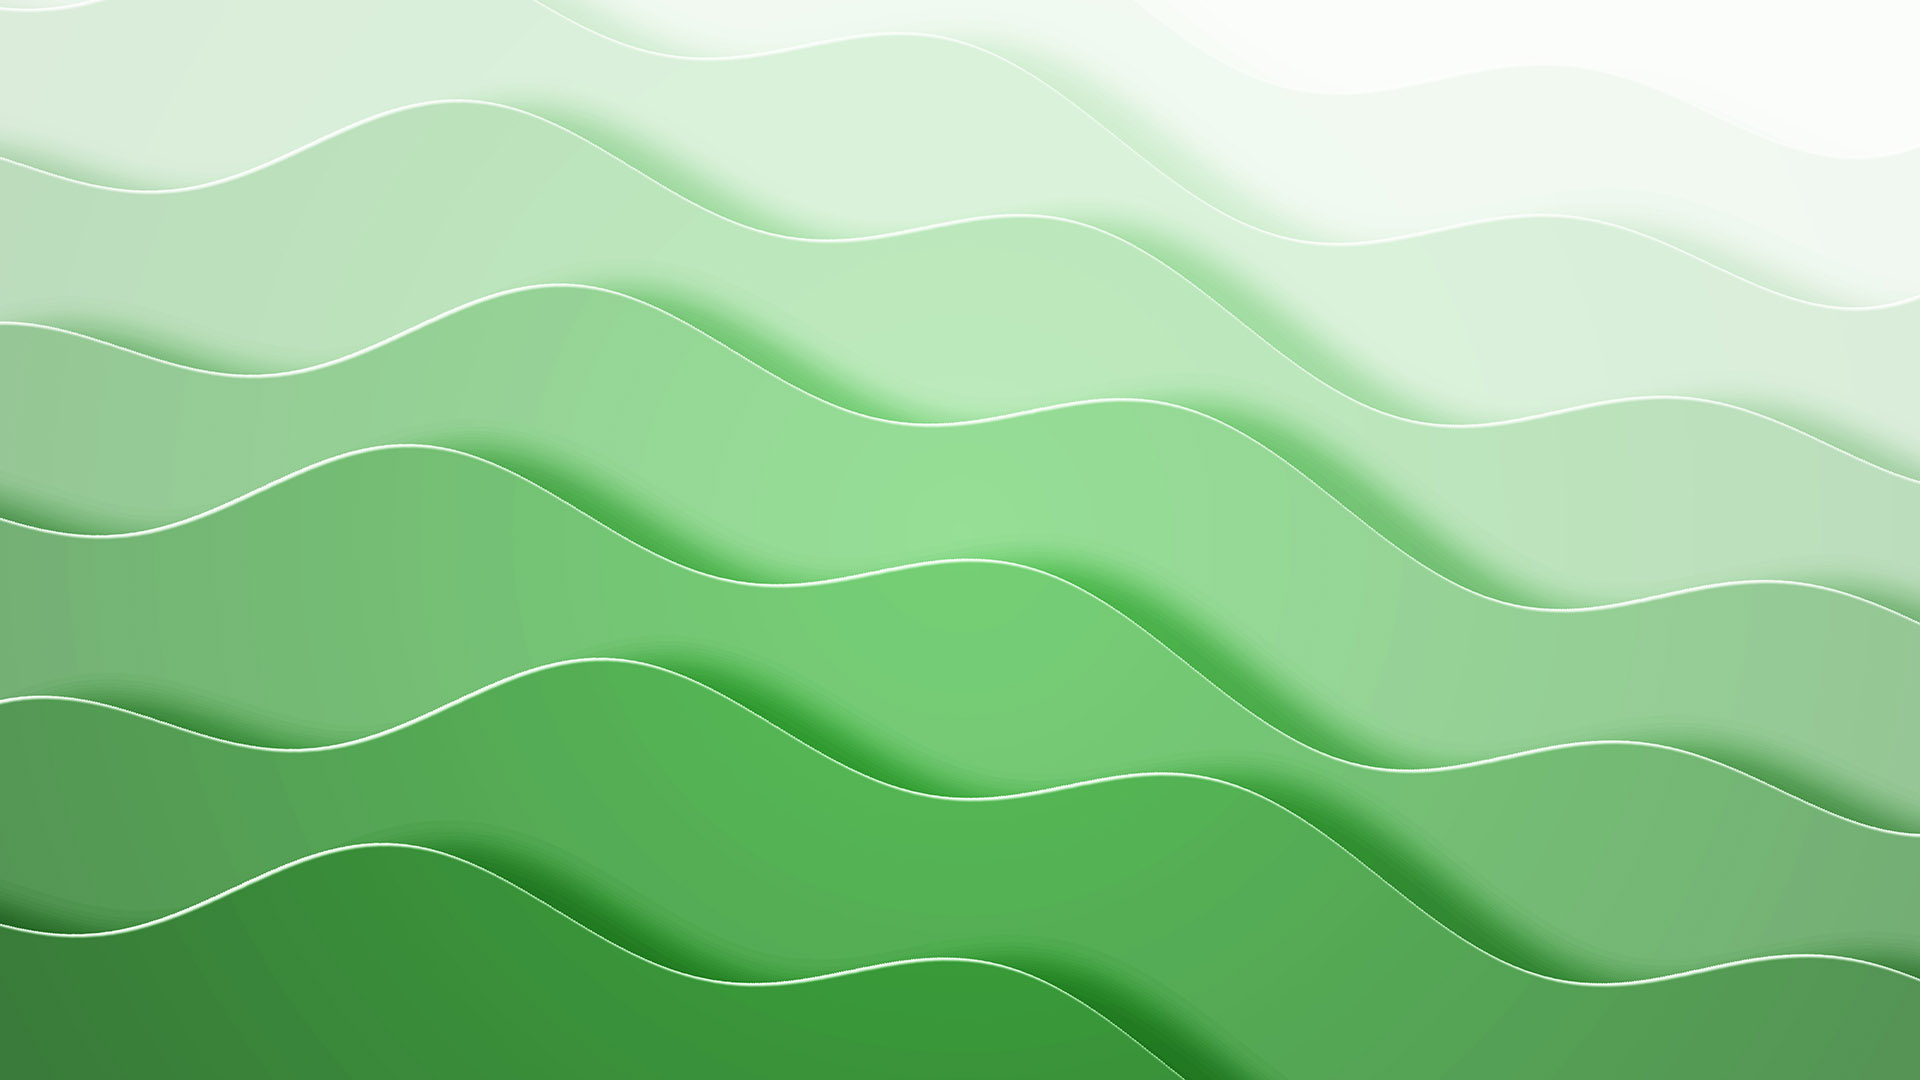 Green layered waves